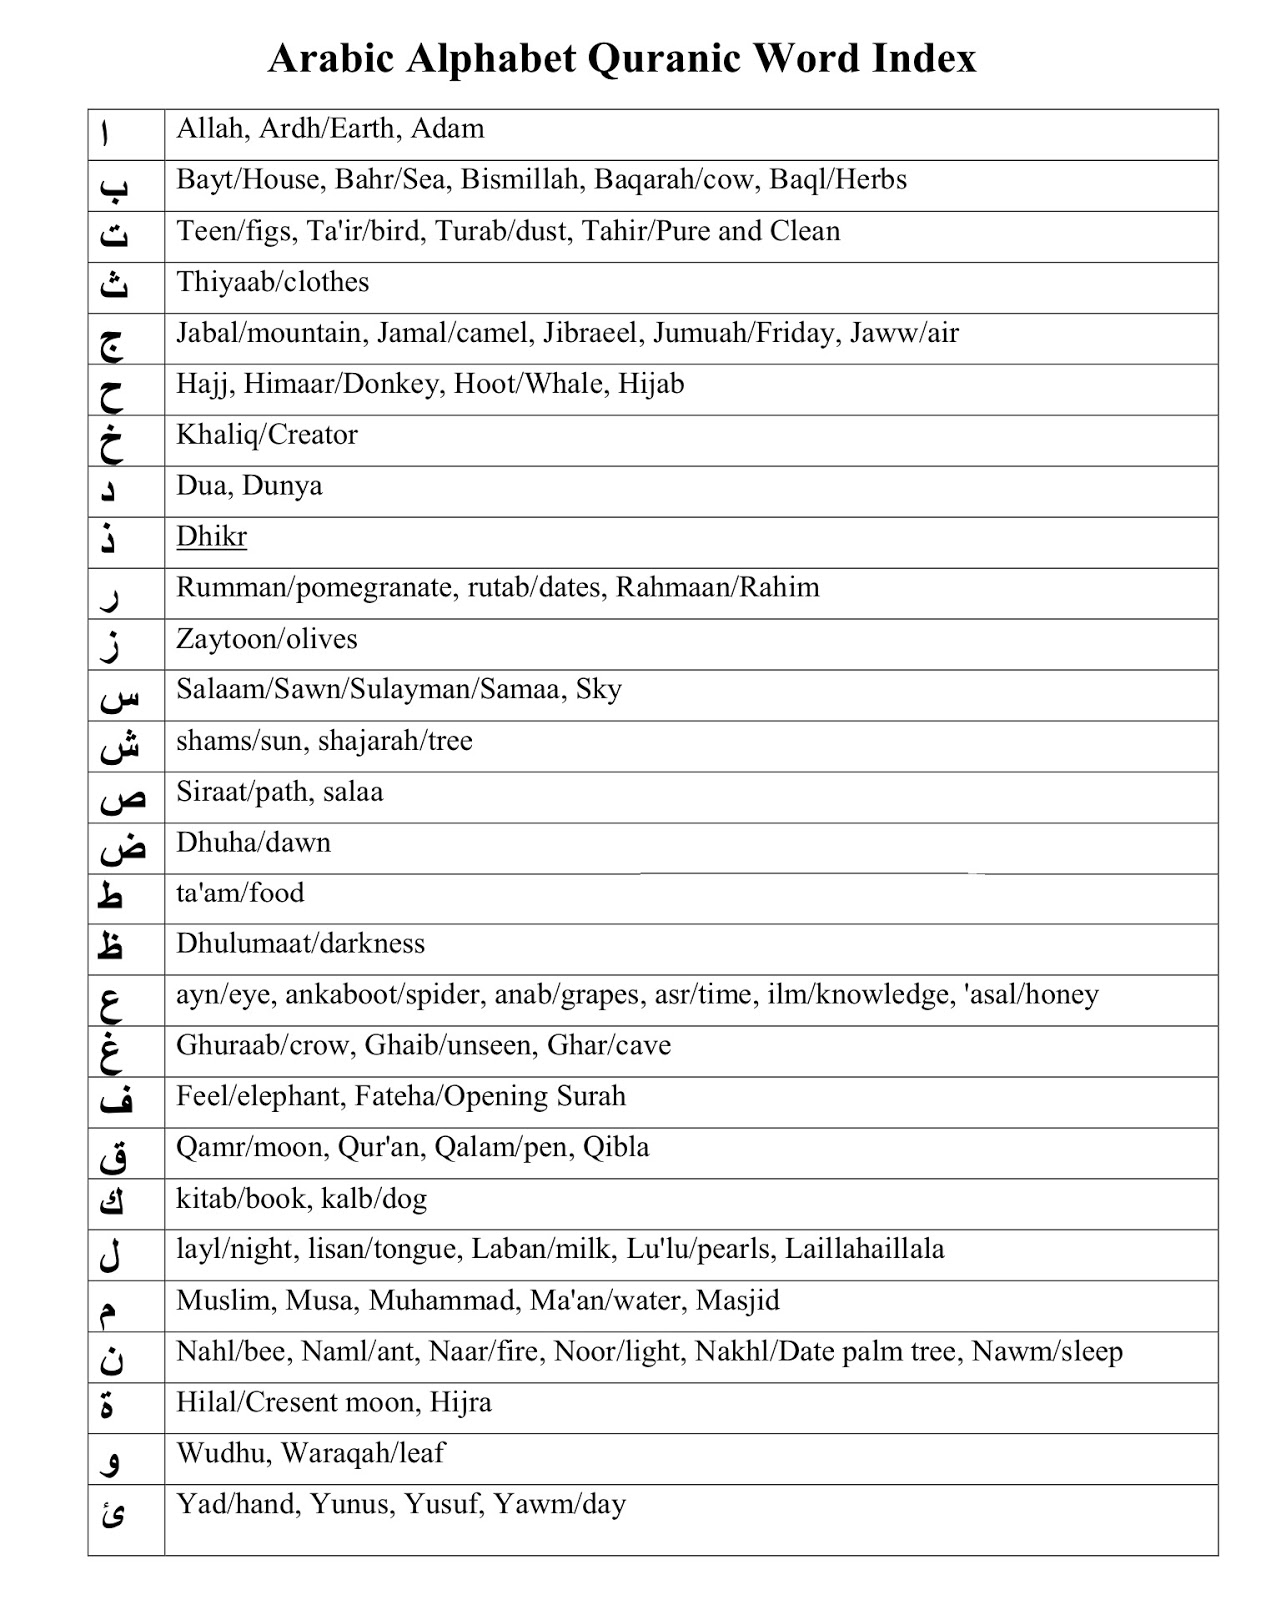 Islam From The Start: Arabic Alphabet Quranic Word Index